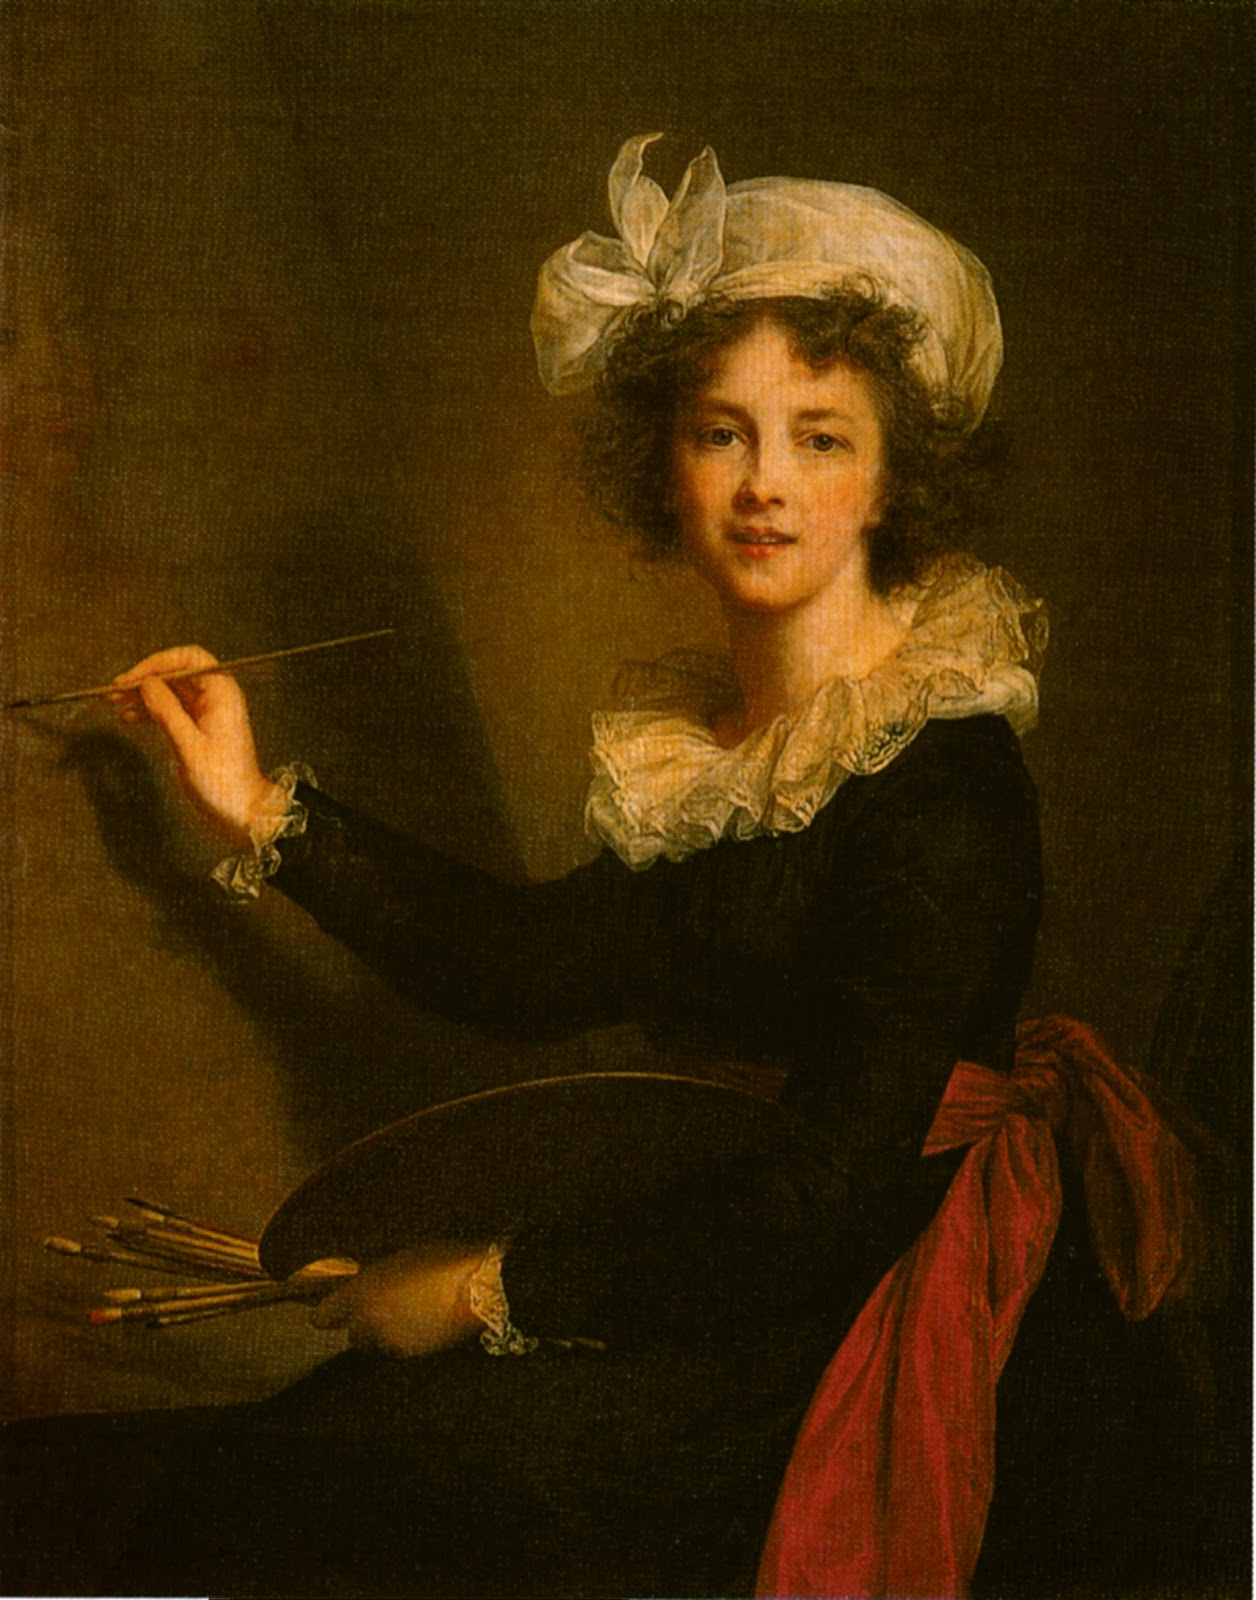 Extrêmement Women in the Act of Painting: Showing her Teeth XI91